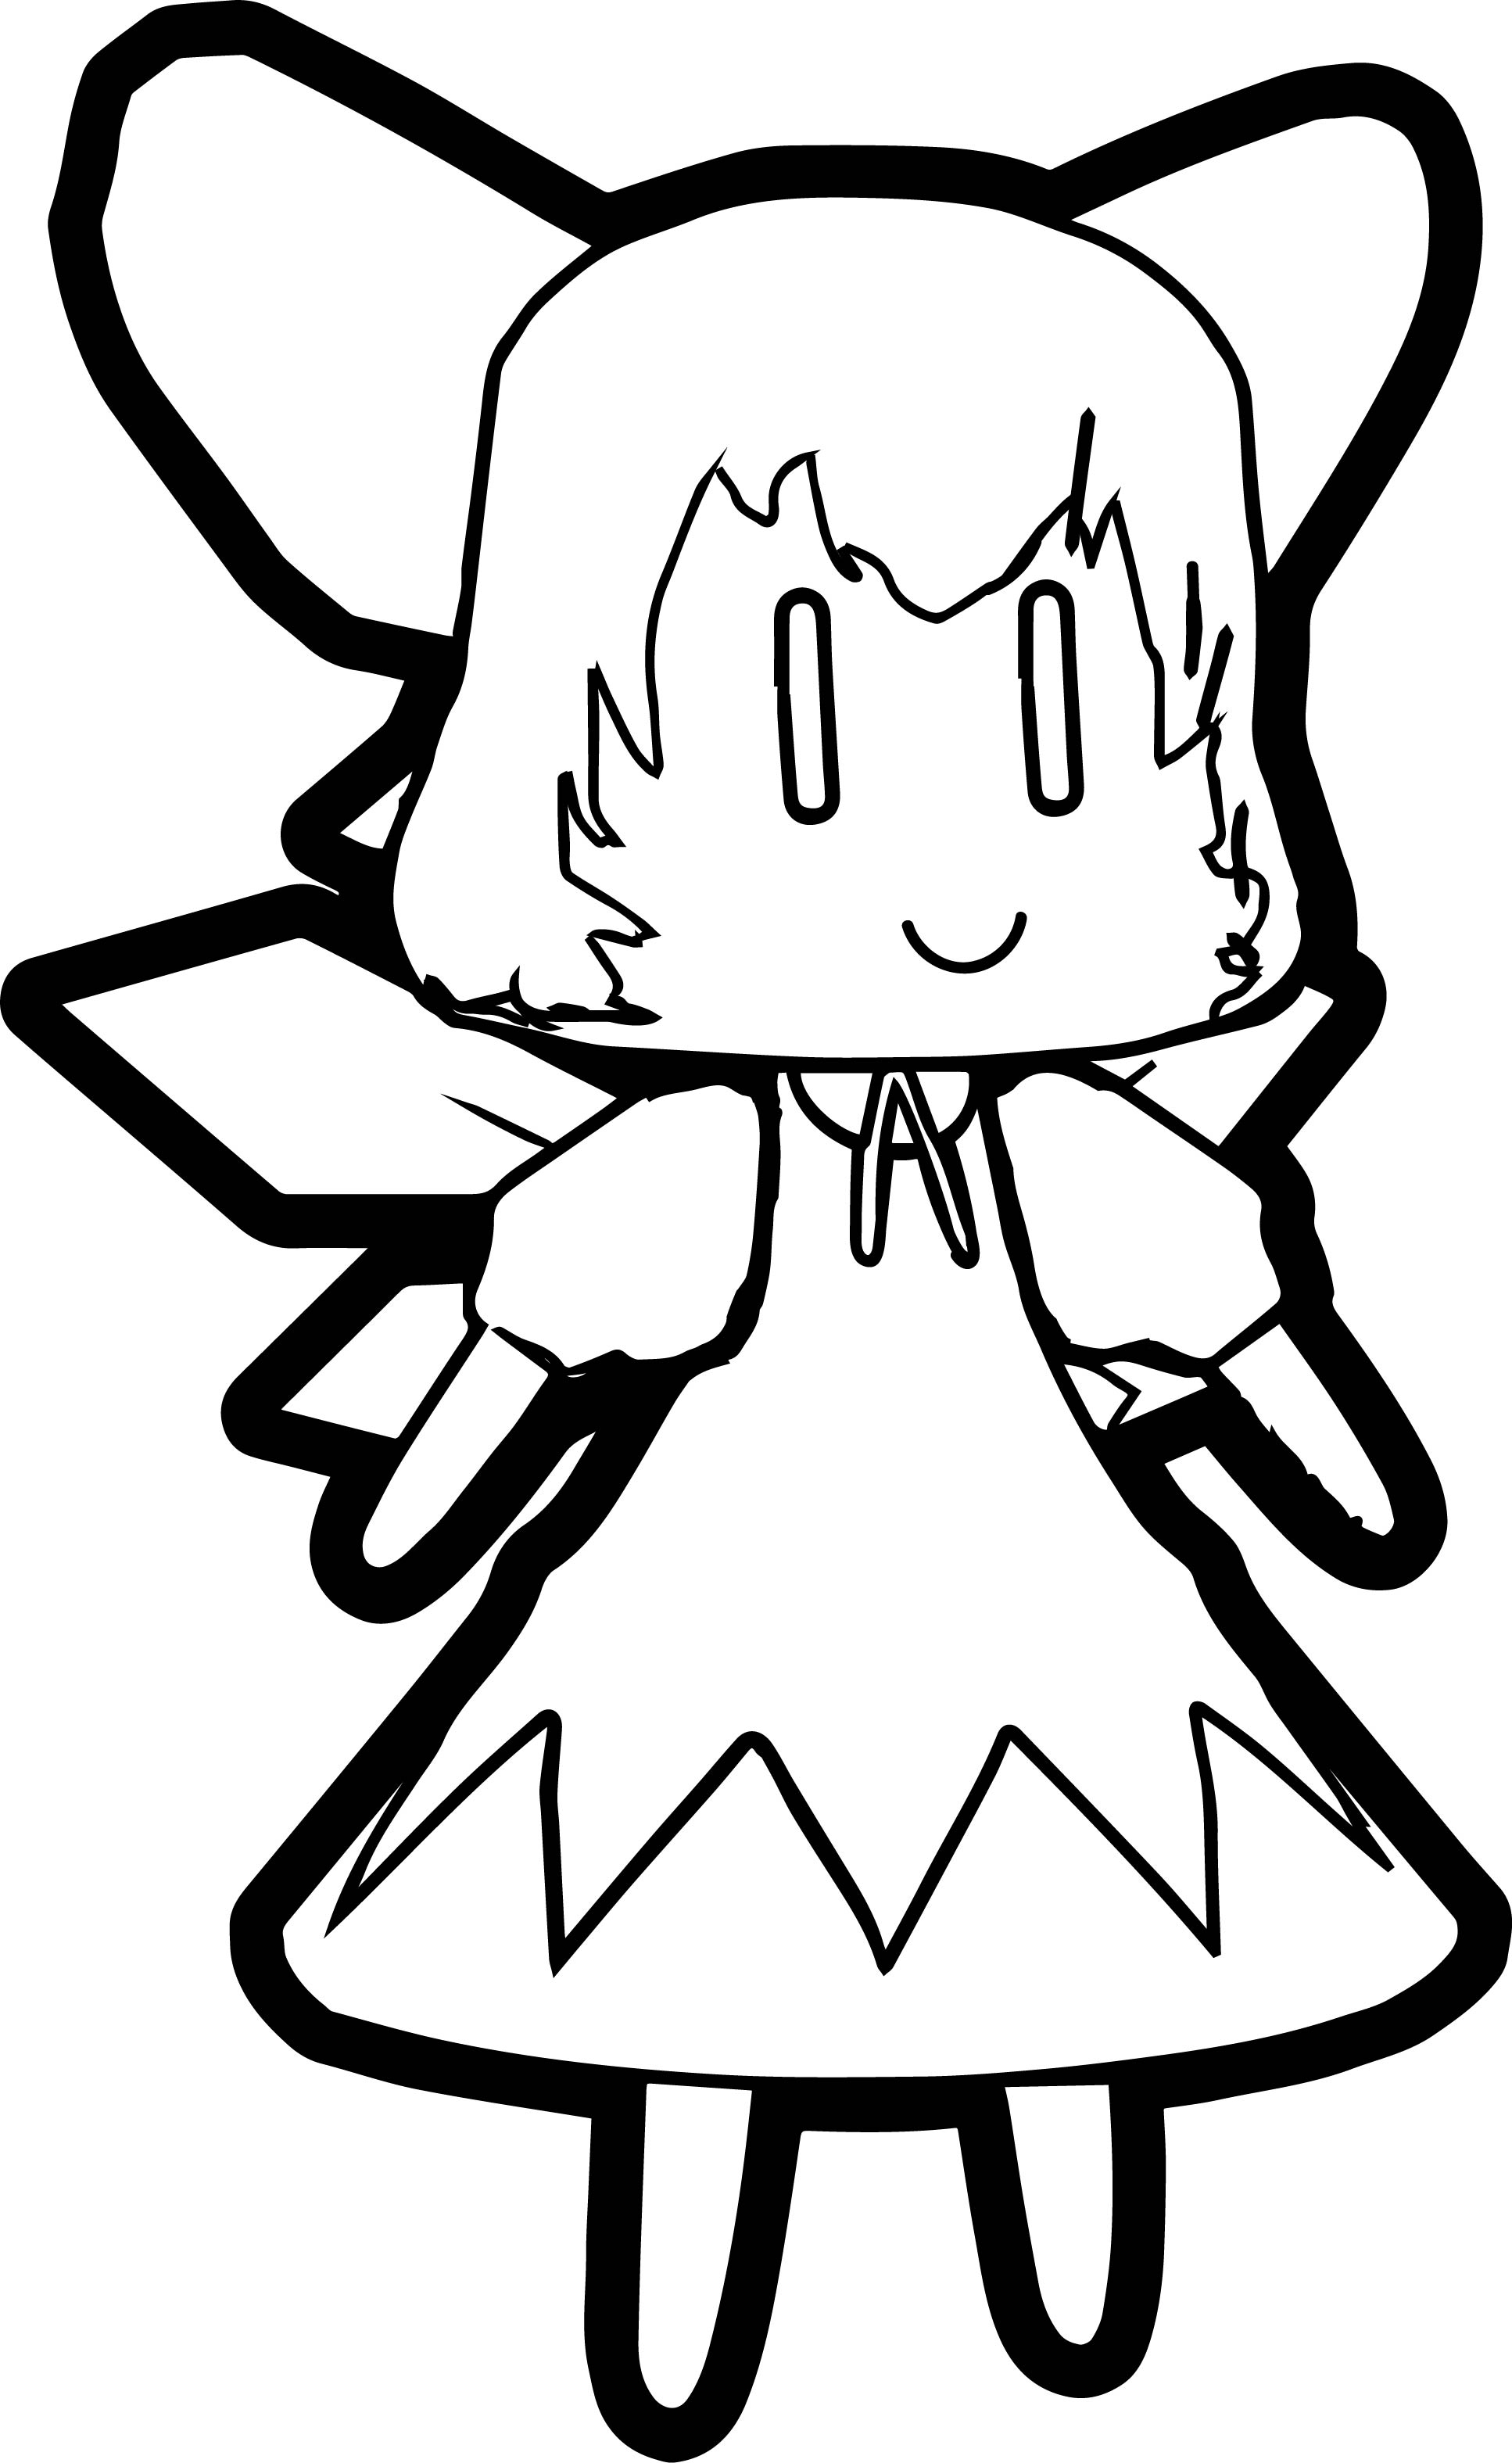 Cirno Manga Cartoon Character Coloring Page